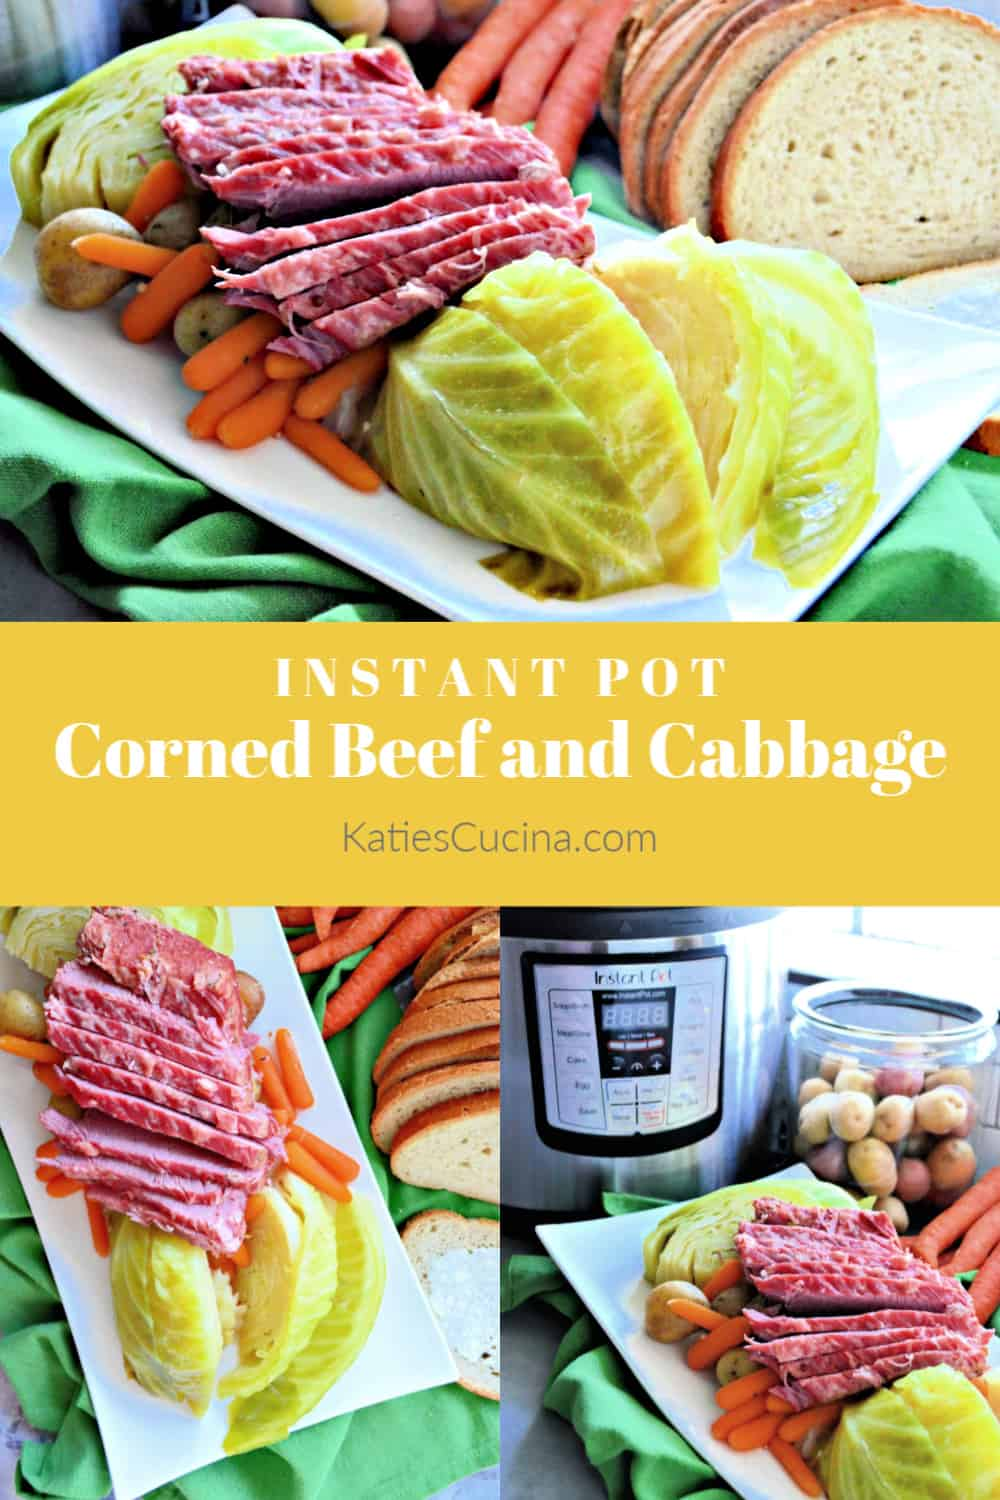 Instant Pot Corned Beef and Cabbage photo collage with text